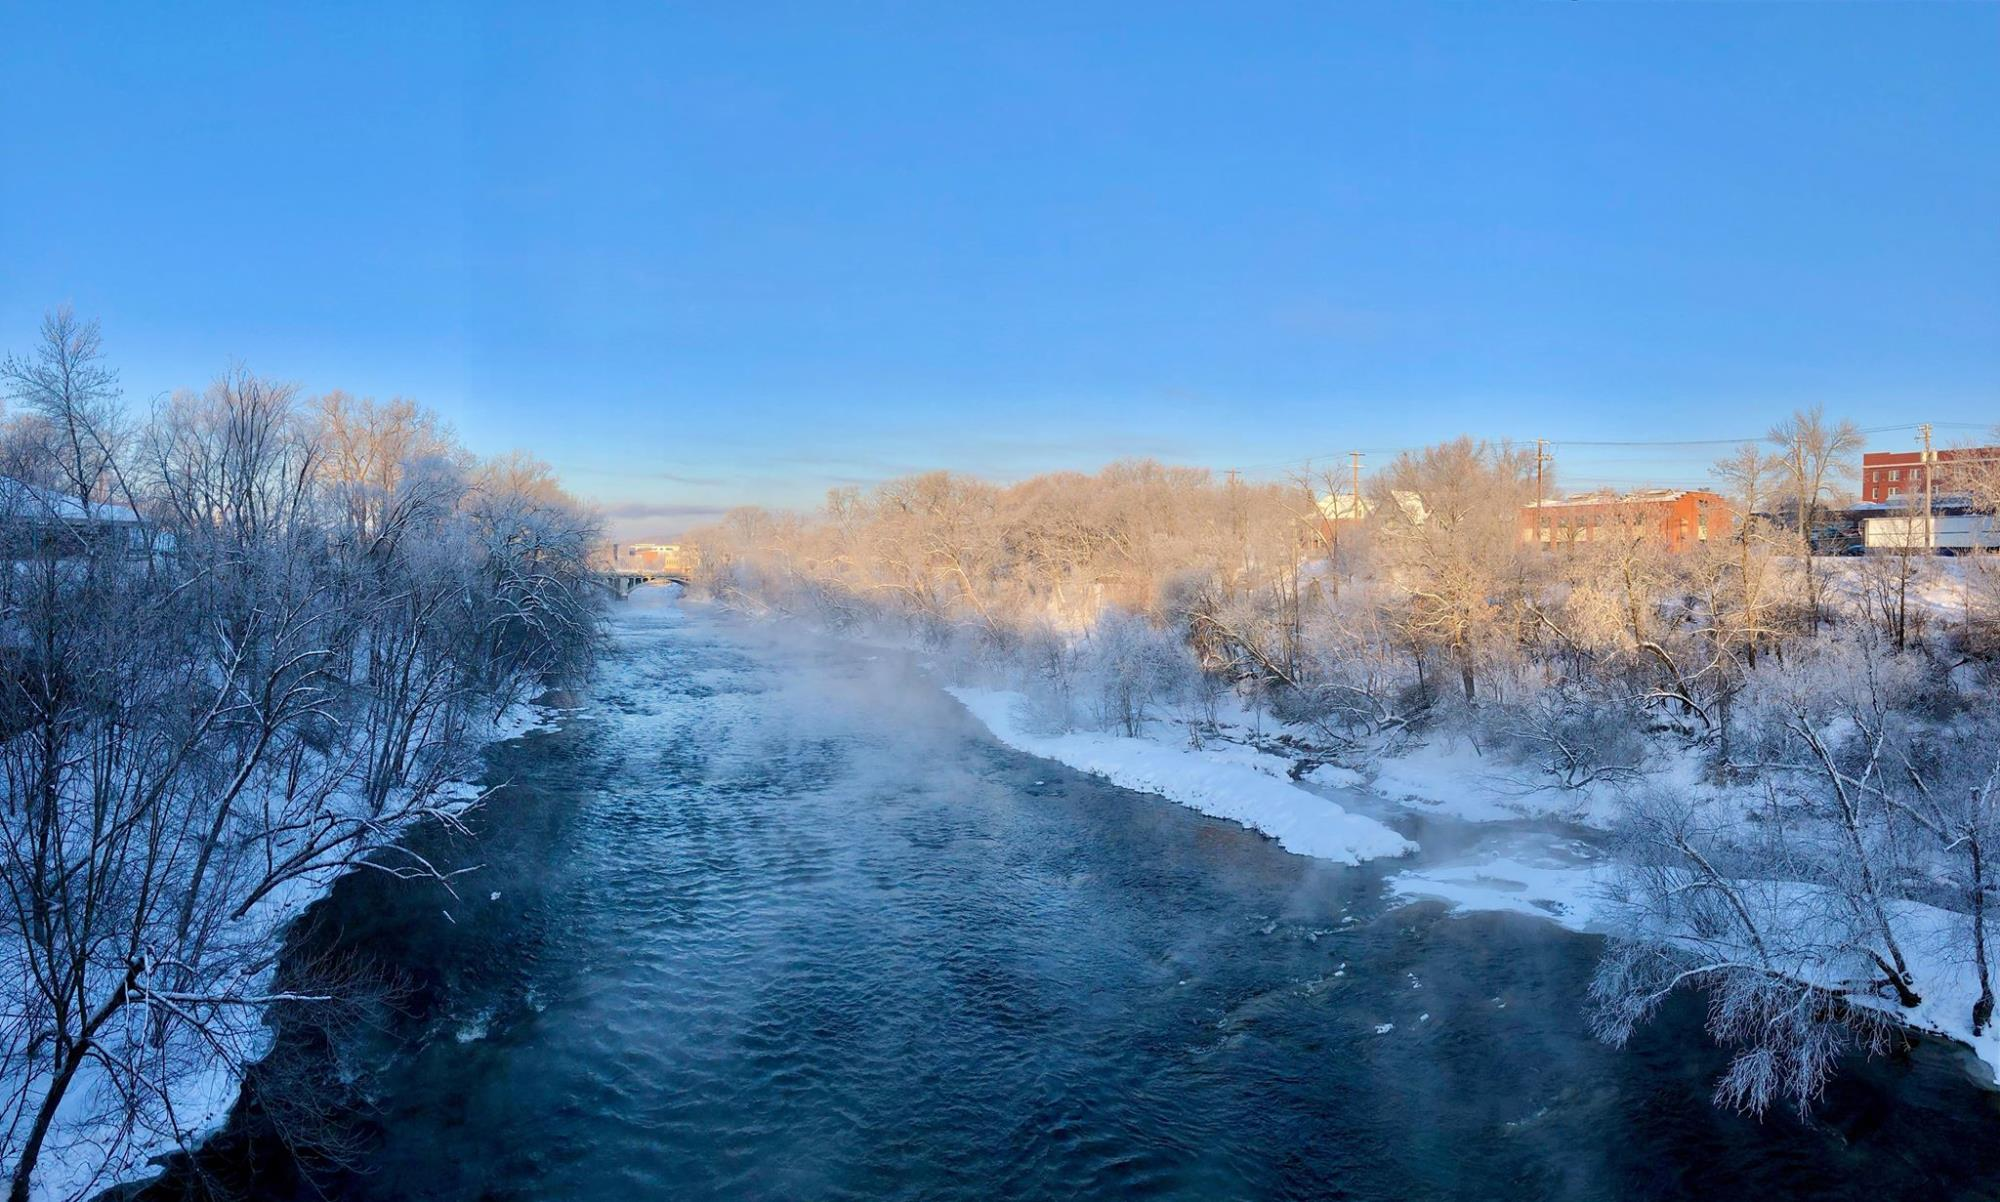 Frosty Morning on the Eau Claire River